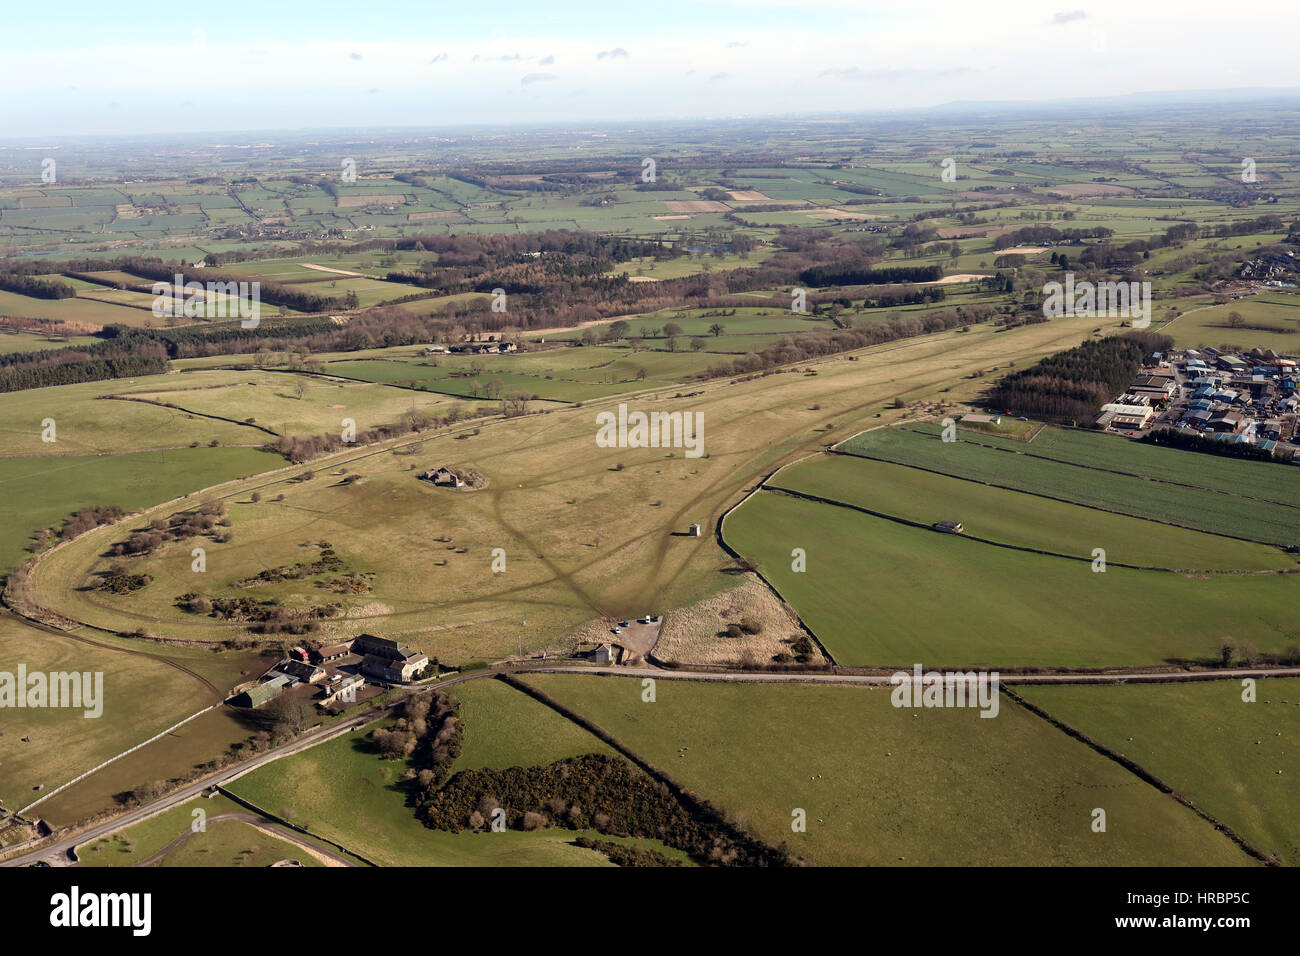 aerial view of the now disused Richmond Racecourse, North Yorkshire, UK Stock Photo